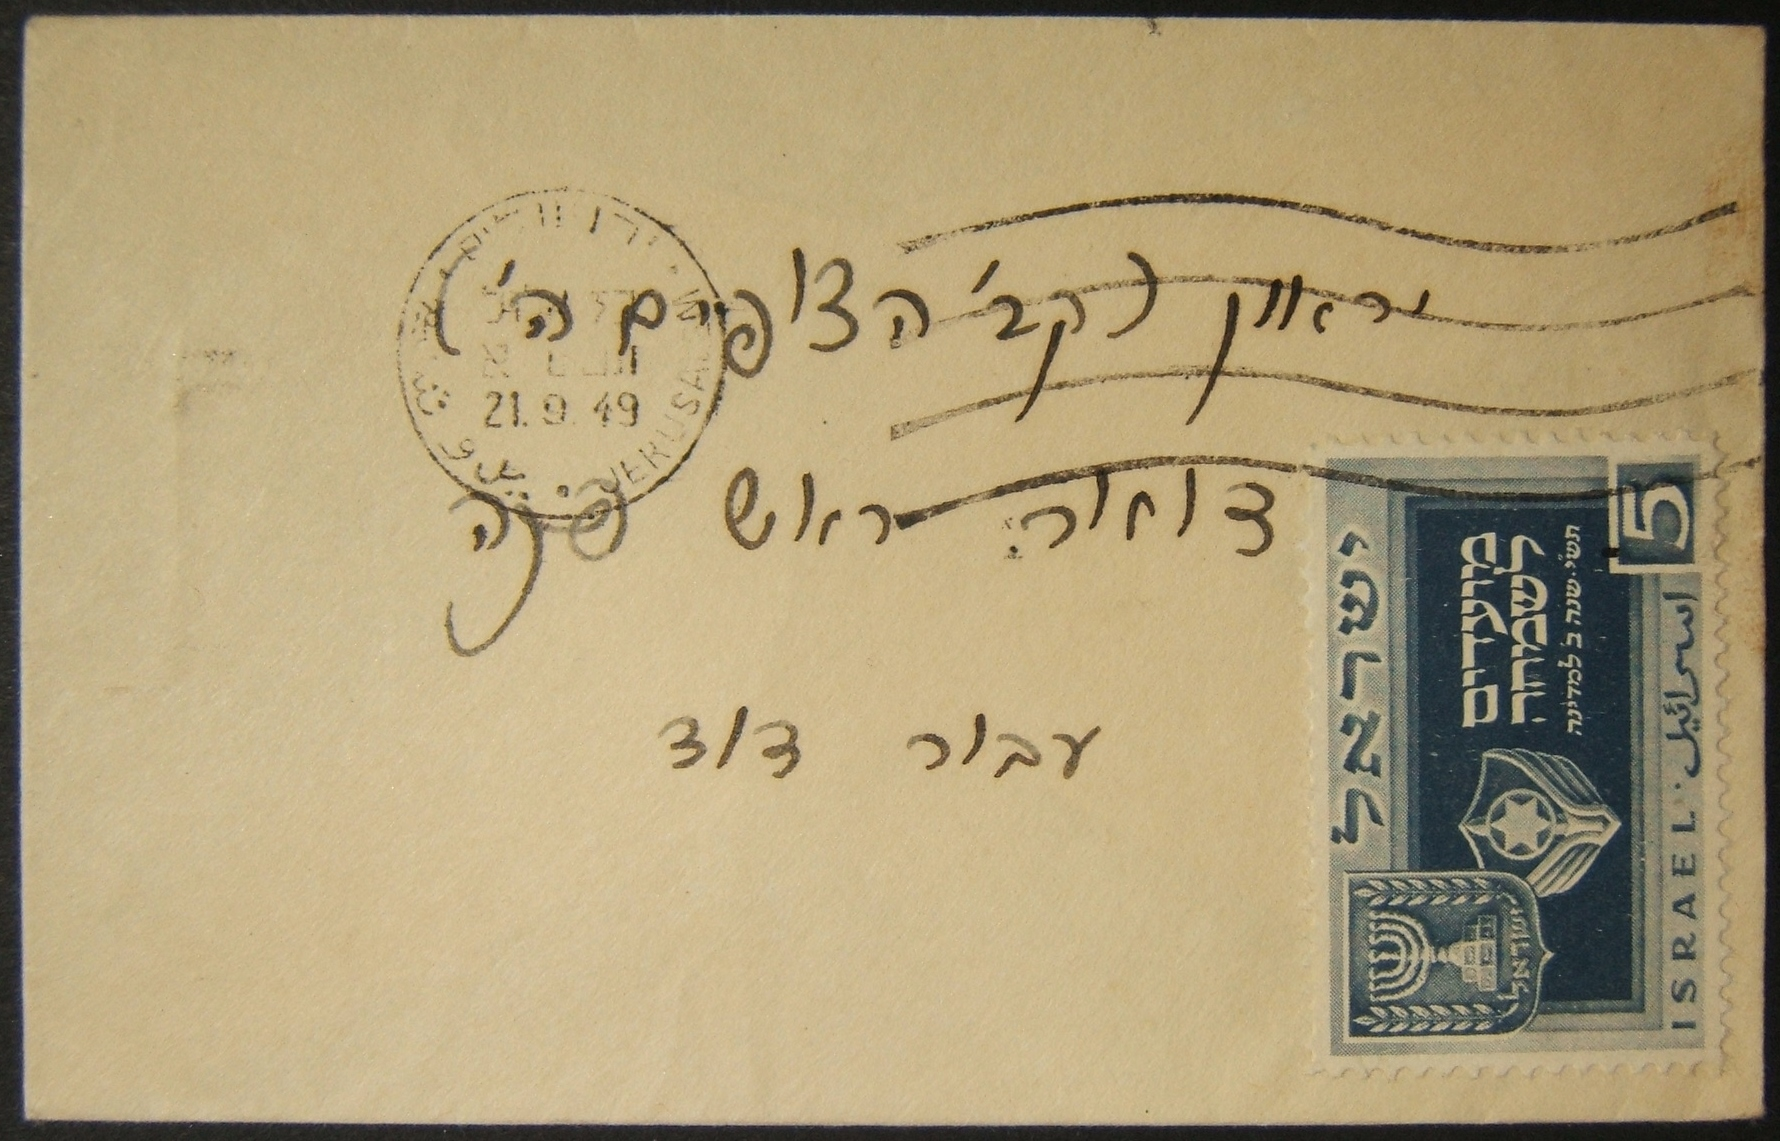 1st day 21.9.49 strike of 2nd Israeli Jerusalem machine-cancel on printed matter mail